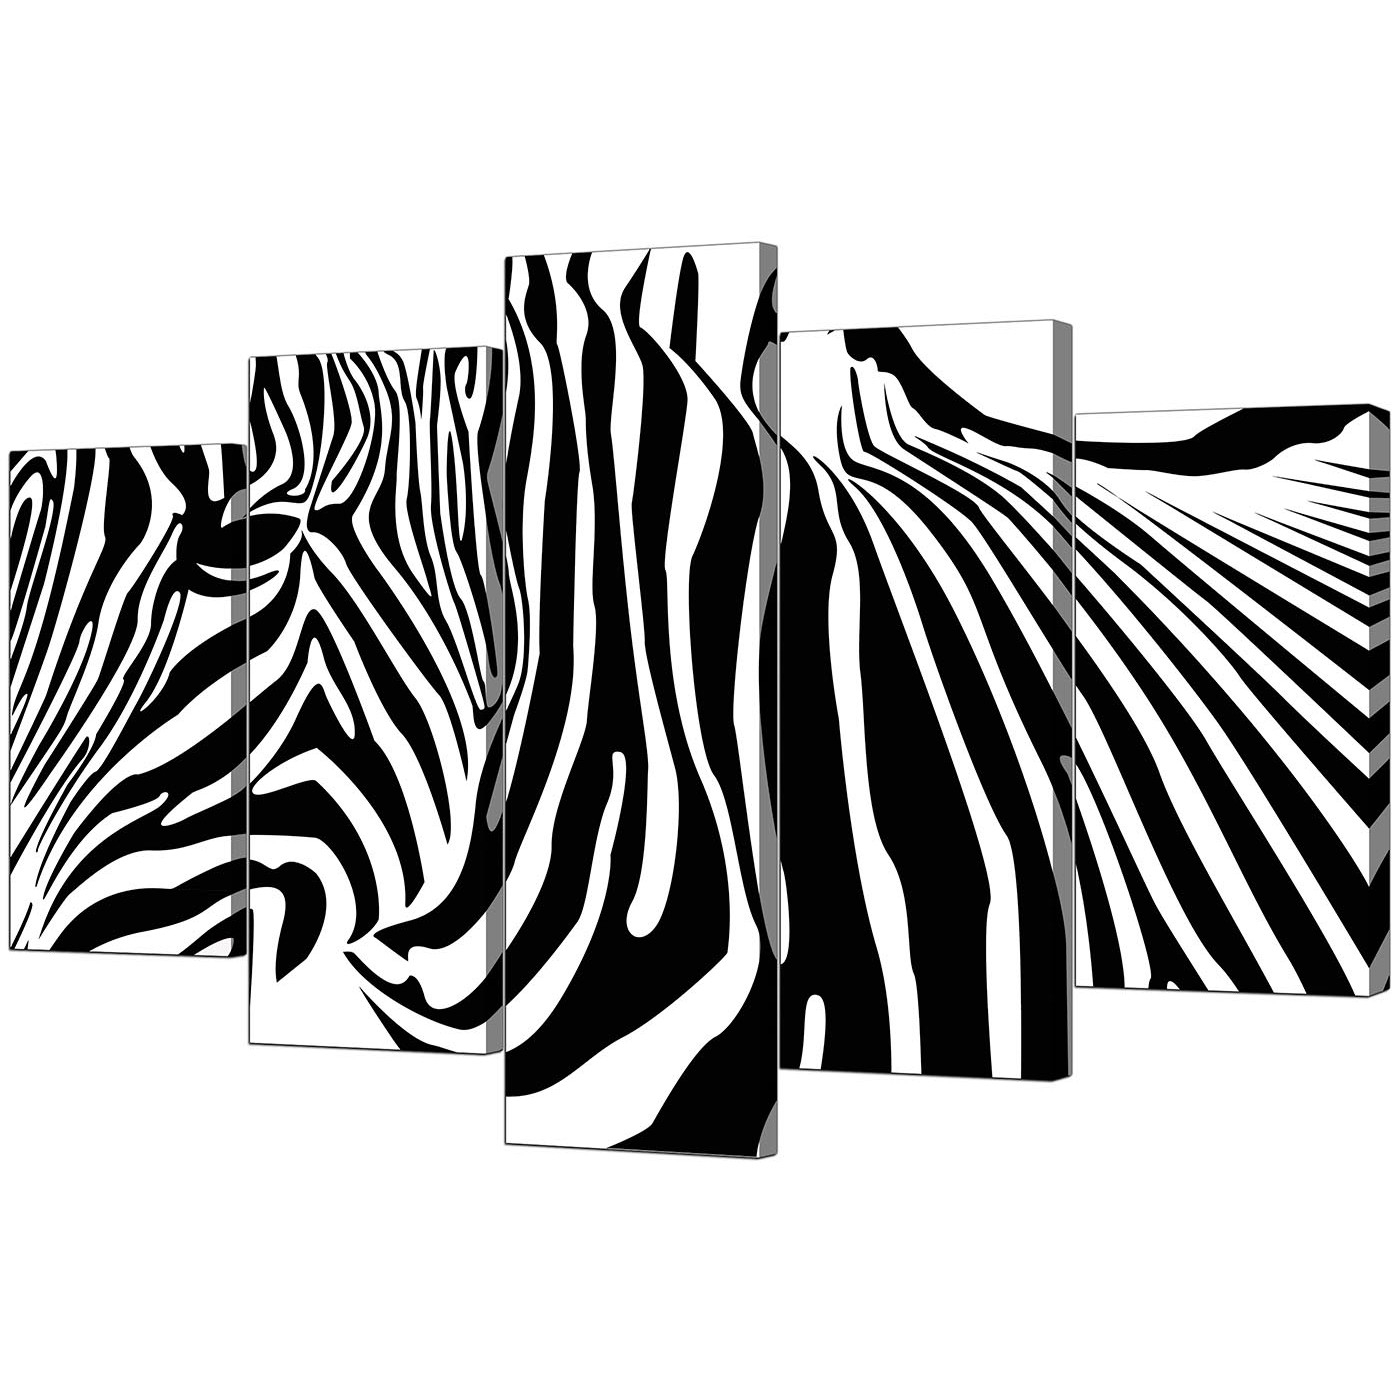 Zebra Canvas Wall Art Within Famous Extra Large Zebra Canvas Prints 5 Piece In Black & White (View 10 of 15)